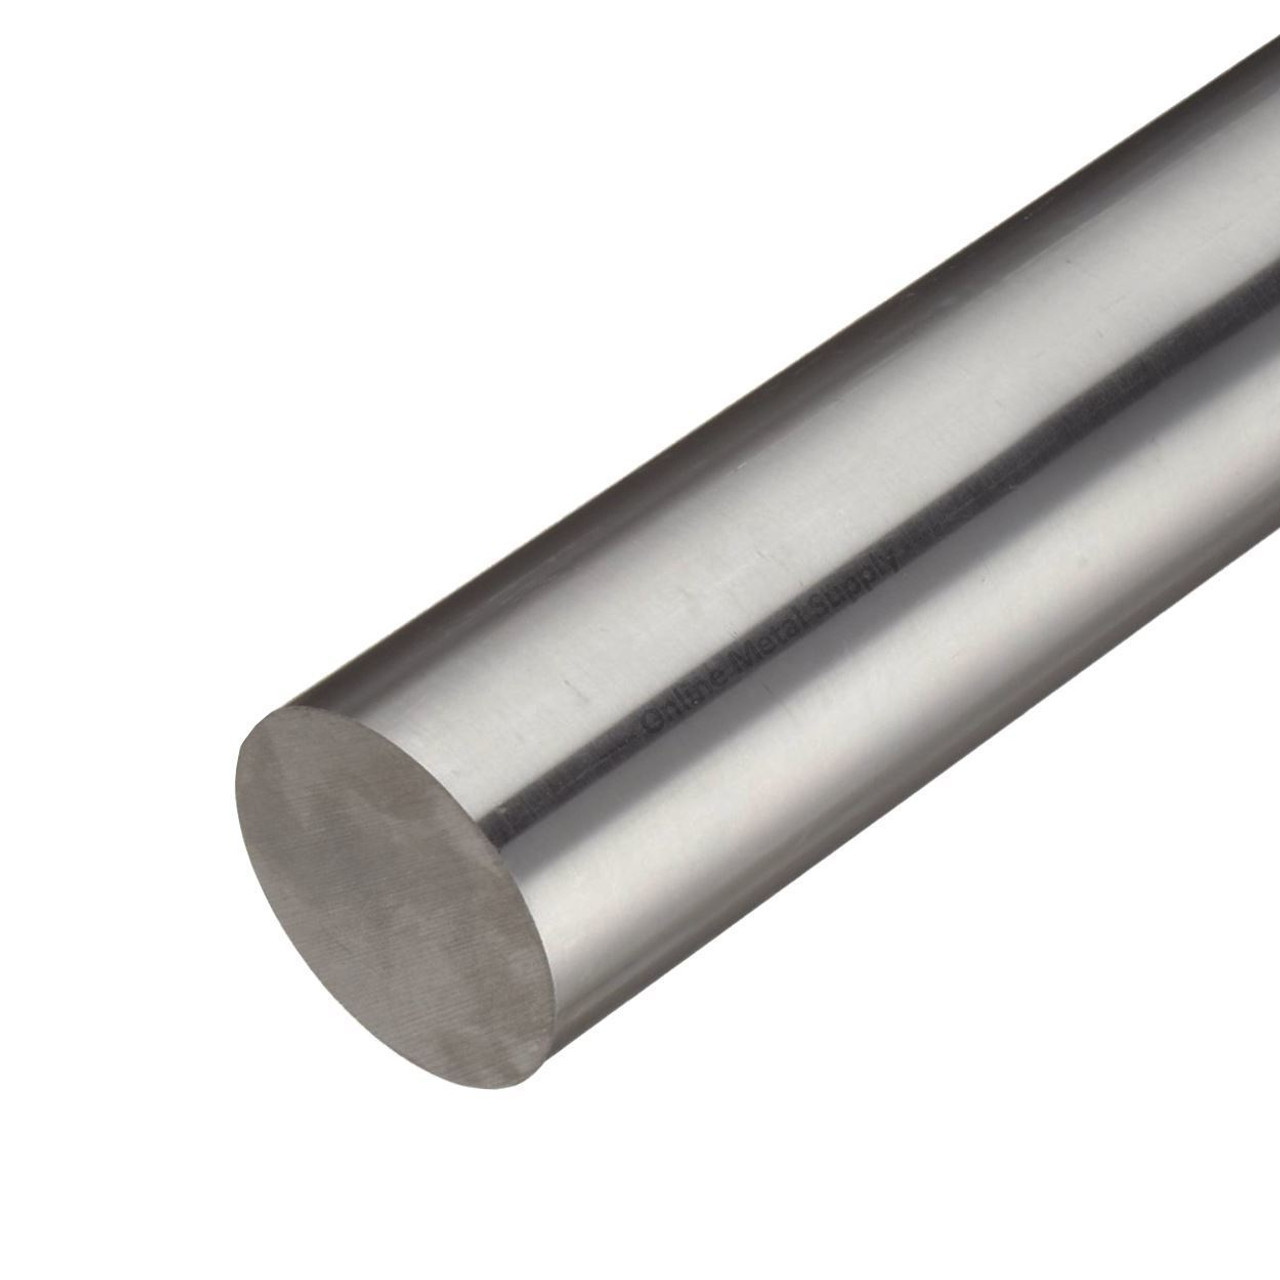 2.750 (2-3/4 inch) x 12 inches, 416 CF Stainless Steel Round Rod